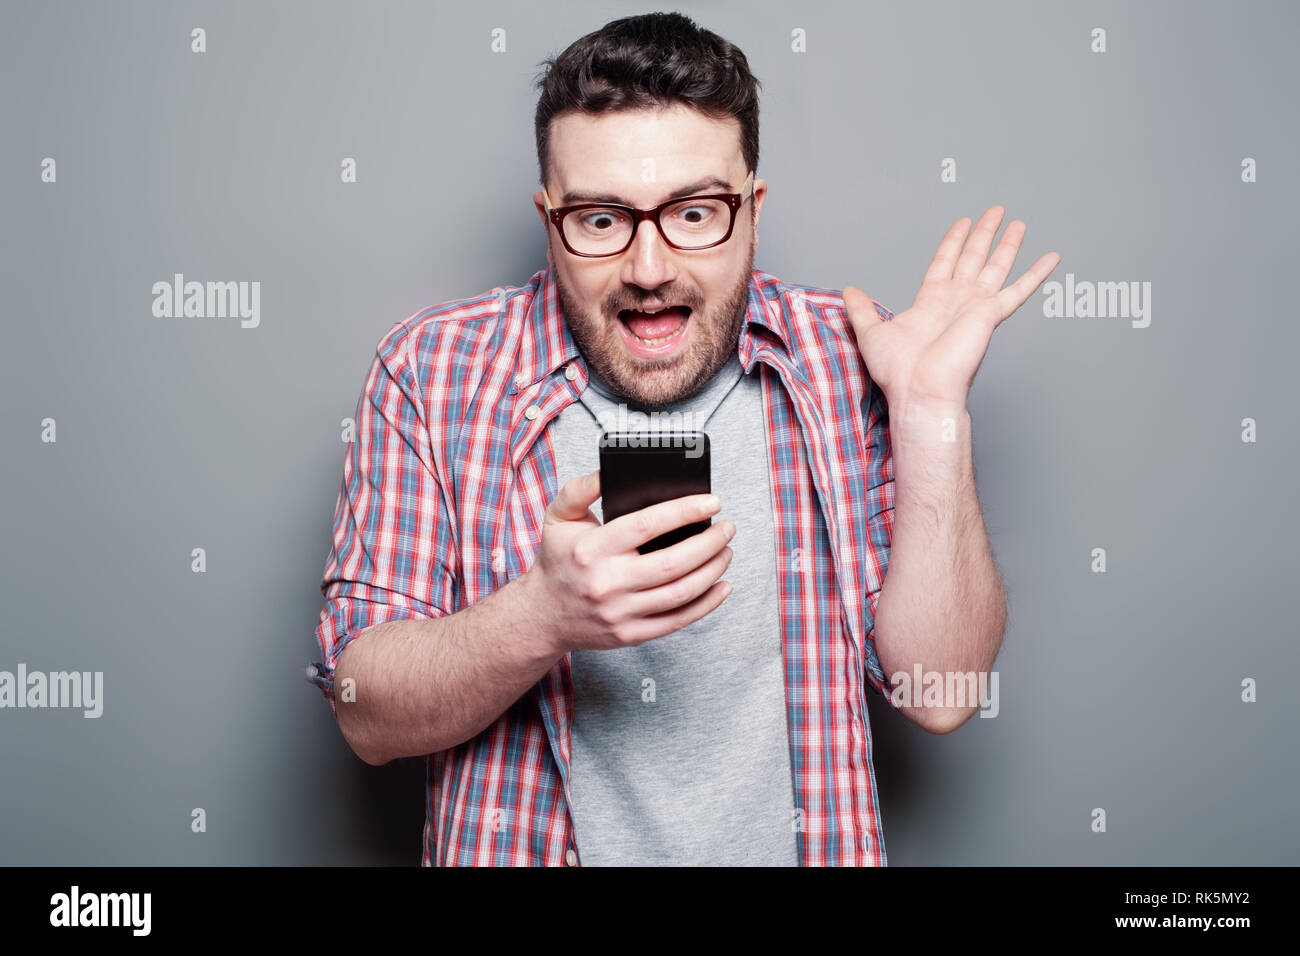 Shocked man reading message on cellphone - Stock Image